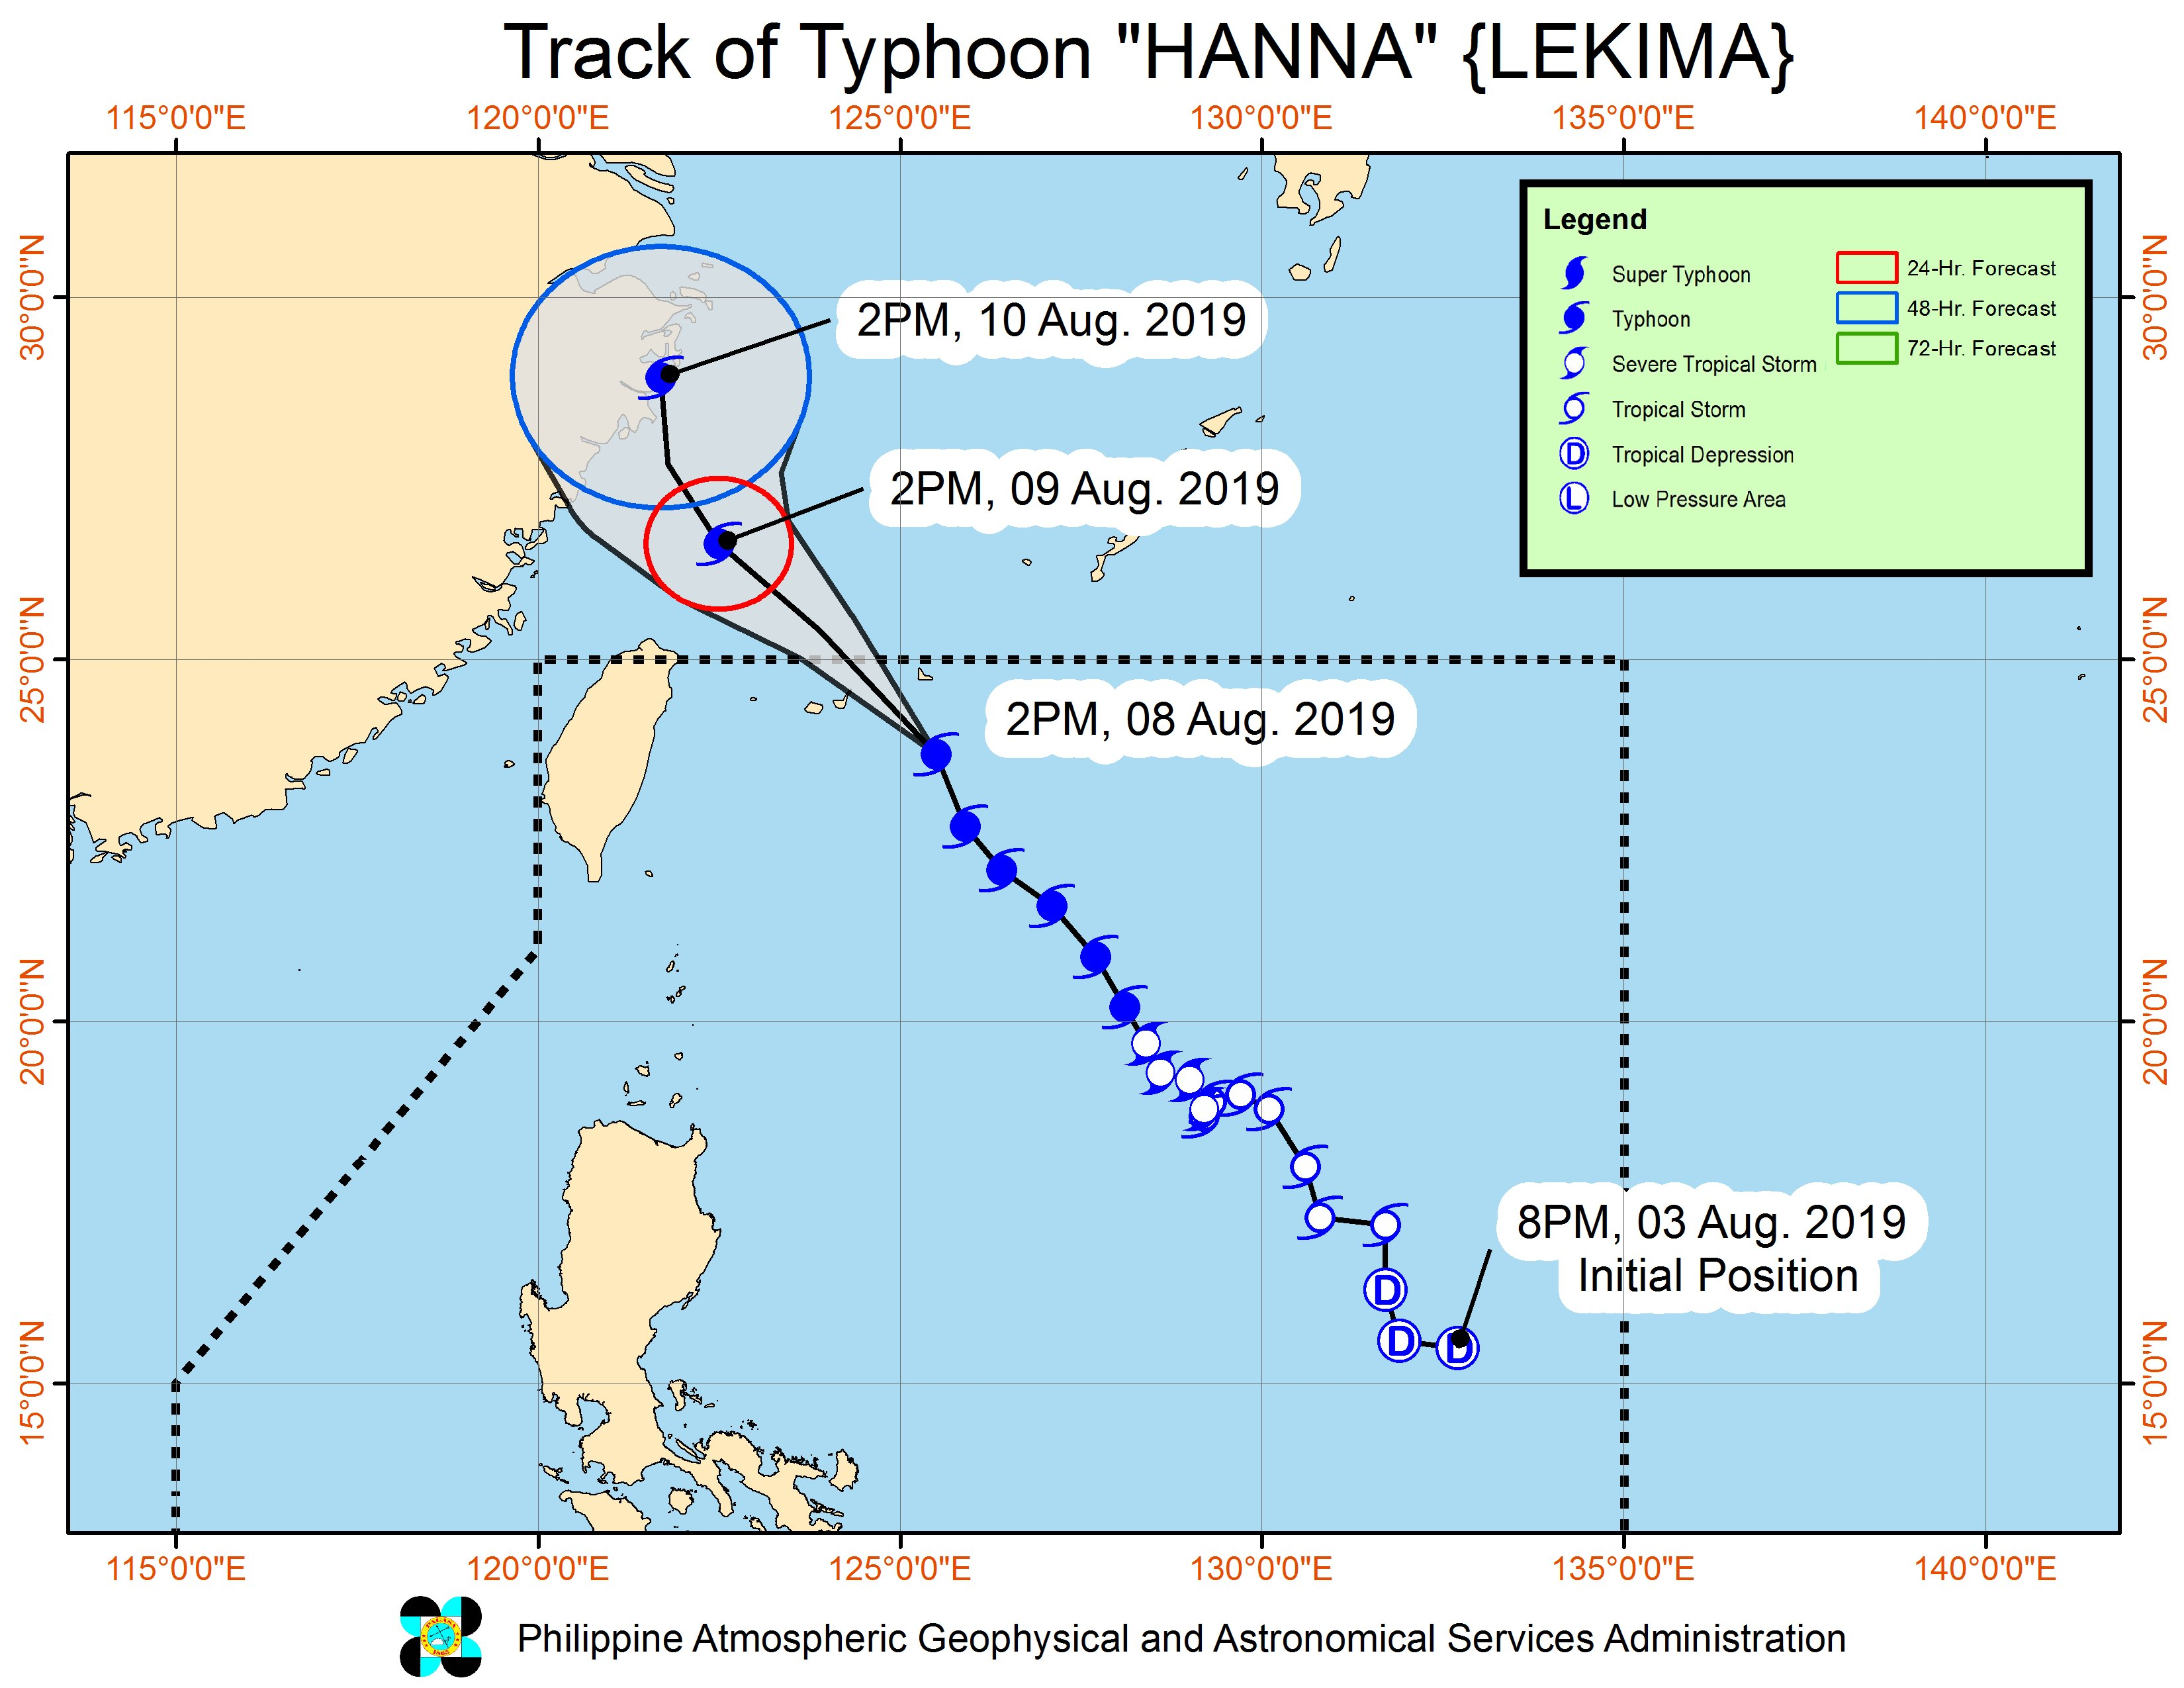 Forecast track of Typhoon Hanna (Lekima) as of August 8, 2019, 5 pm. Image from PAGASA